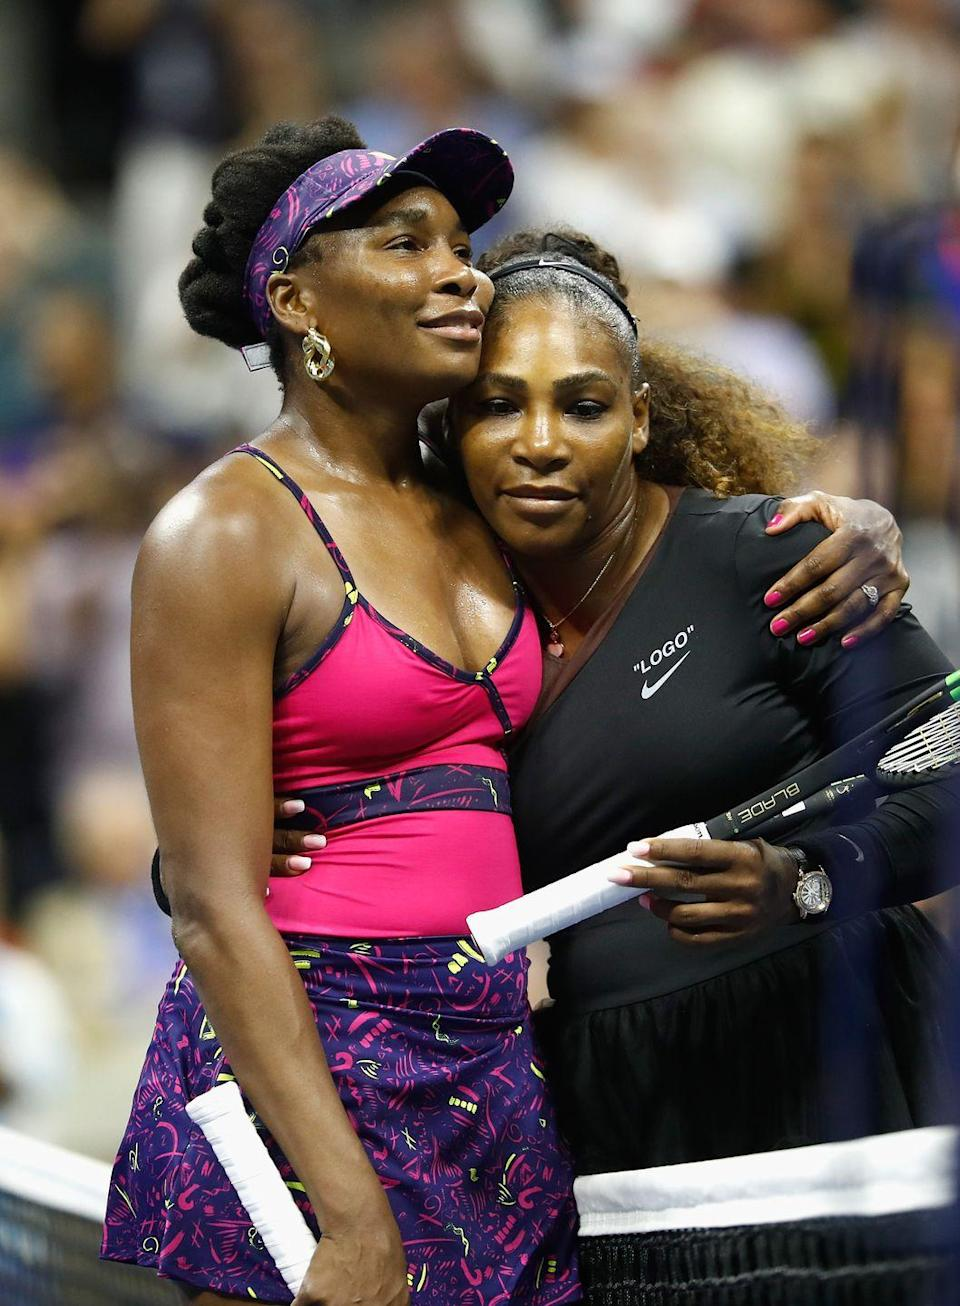 "<p><strong>Claim to fame: </strong>Professional tennis players</p><p><strong>Why they're </strong><strong>extraordinary</strong><strong><strong>: </strong></strong>The sisters are incredibly decorated athletes, with 122 combined career singles titles and a total of nine Olympic medals between the two of them. <a href=""https://www.oprahmag.com/life/relationships-love/a25857319/serena-williams-oprah-dating-advice/"" rel=""nofollow noopener"" target=""_blank"" data-ylk=""slk:Serena"" class=""link rapid-noclick-resp"">Serena</a>, 39, is the first tennis player to win 23 Grand Slam titles and has won more than $88 million in prize money—<a href=""https://www.cnn.com/2013/09/13/us/serena-williams-fast-facts/index.html"" rel=""nofollow noopener"" target=""_blank"" data-ylk=""slk:the highest"" class=""link rapid-noclick-resp"">the highest</a> of any female athlete. <br></p>"